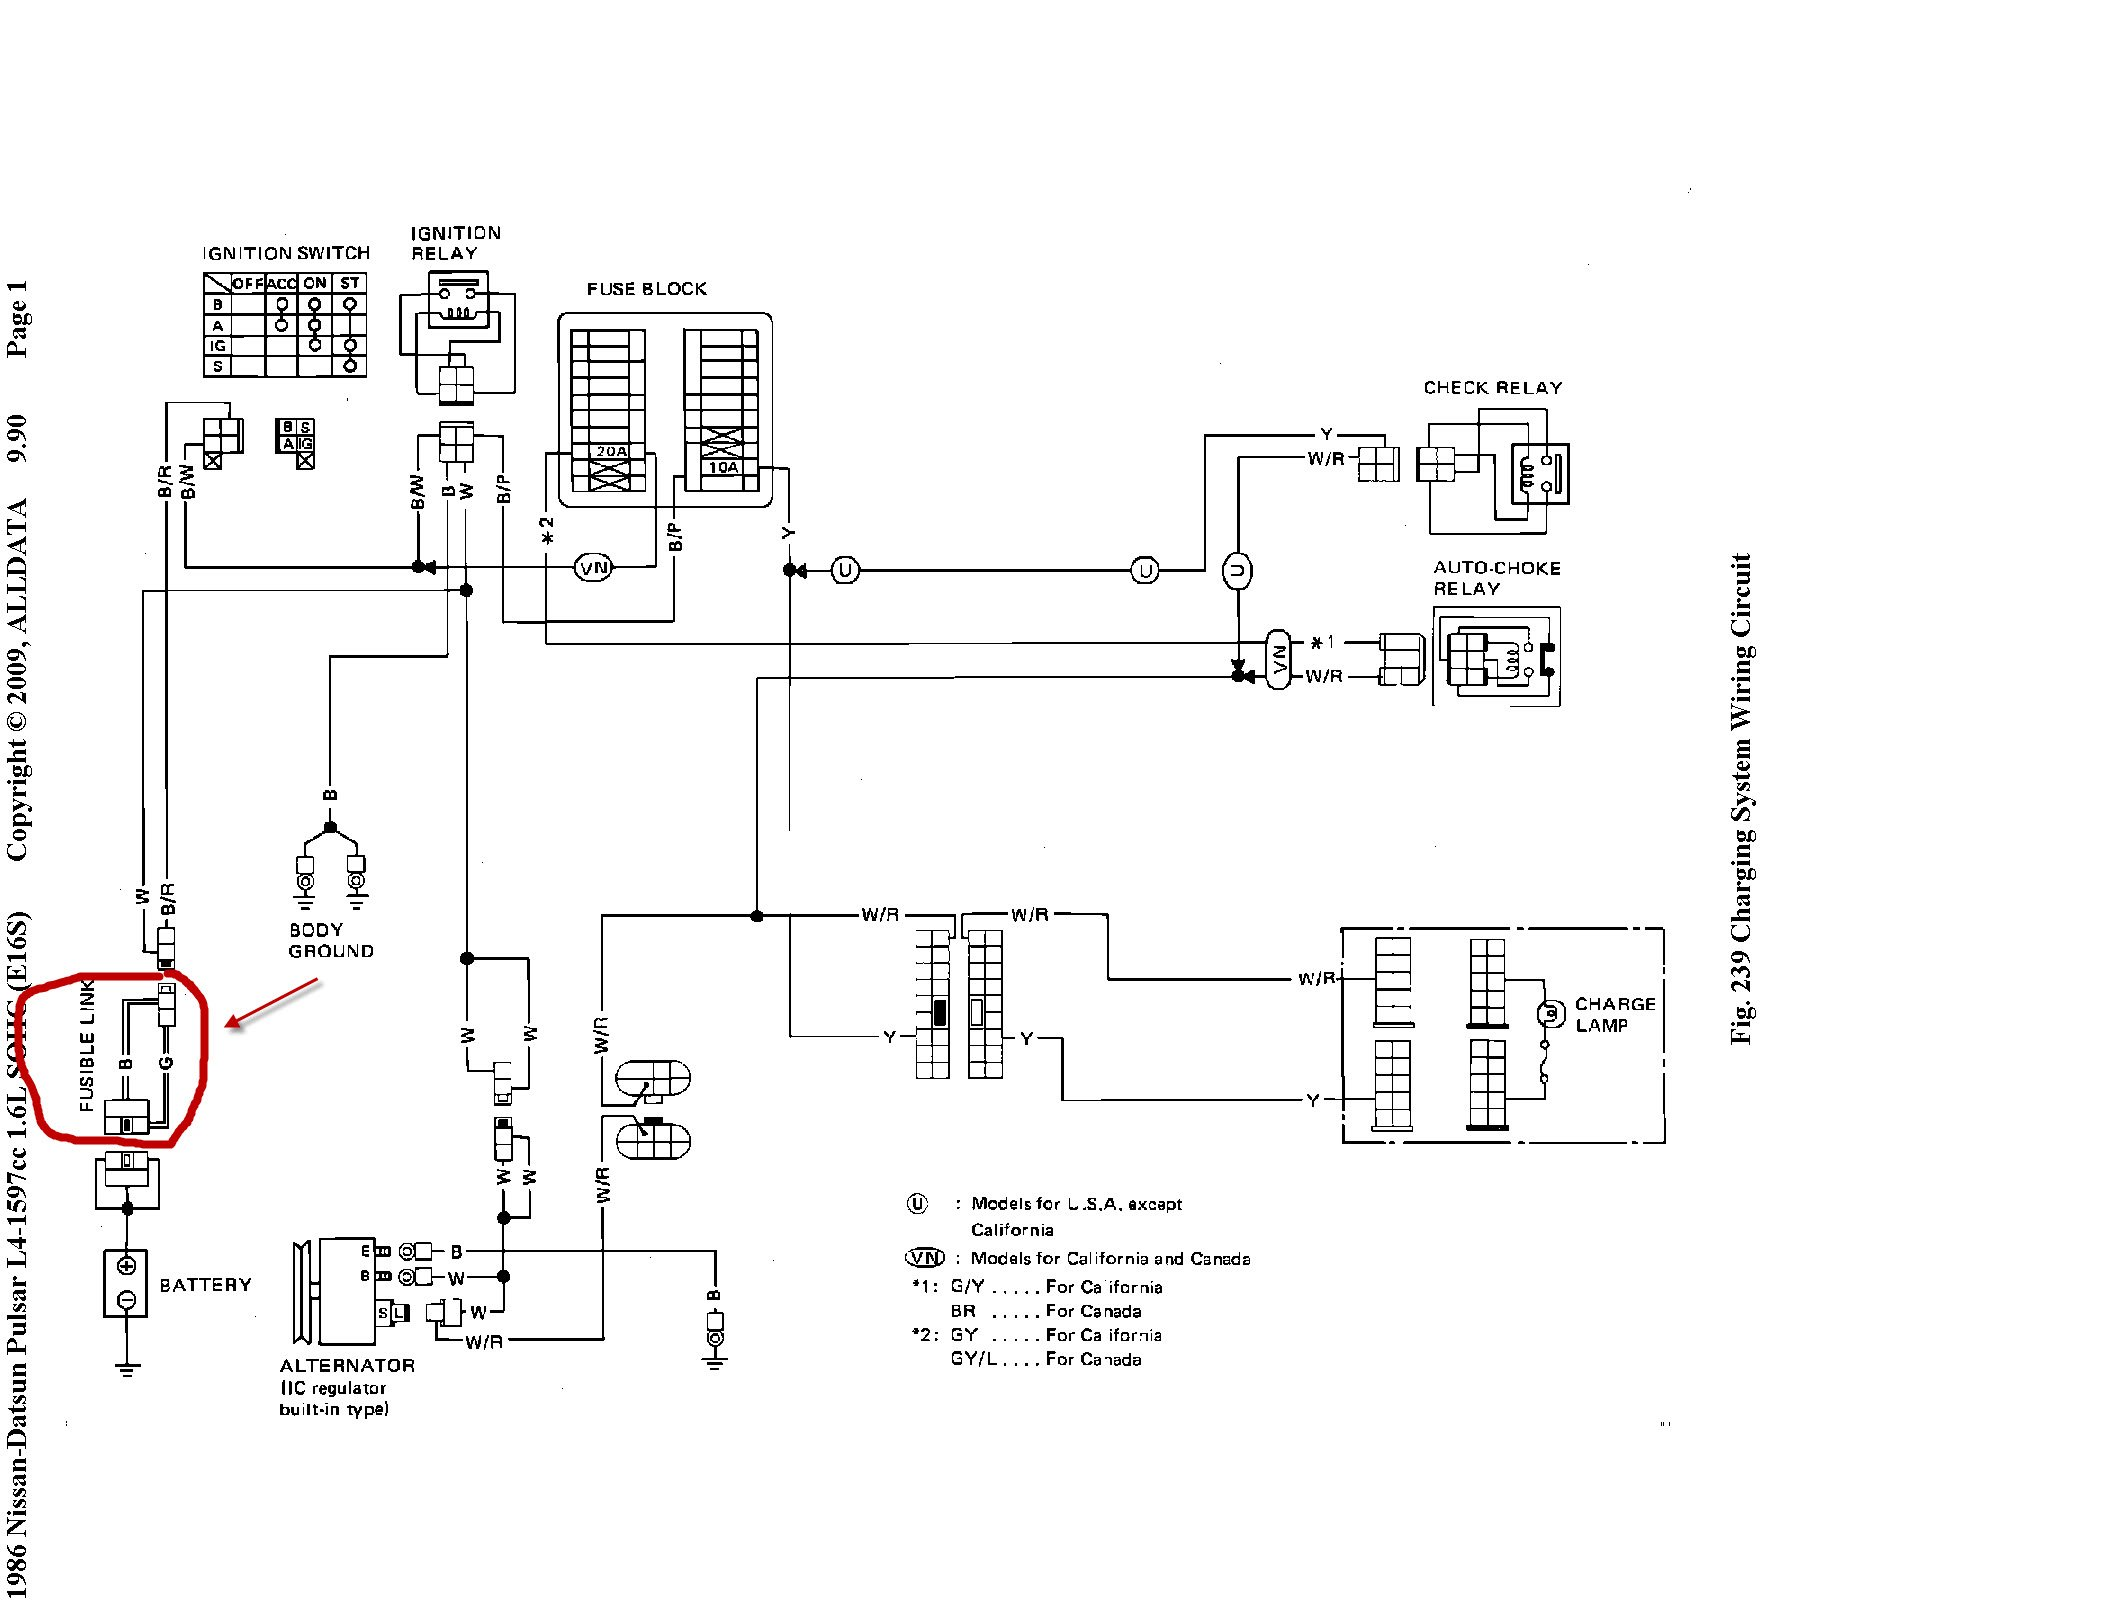 2012 10 01_131218_10 1 2012_9 02 54_am nissan pulsar wiring diagram n15 efcaviation com nissan pulsar wiring diagram at reclaimingppi.co